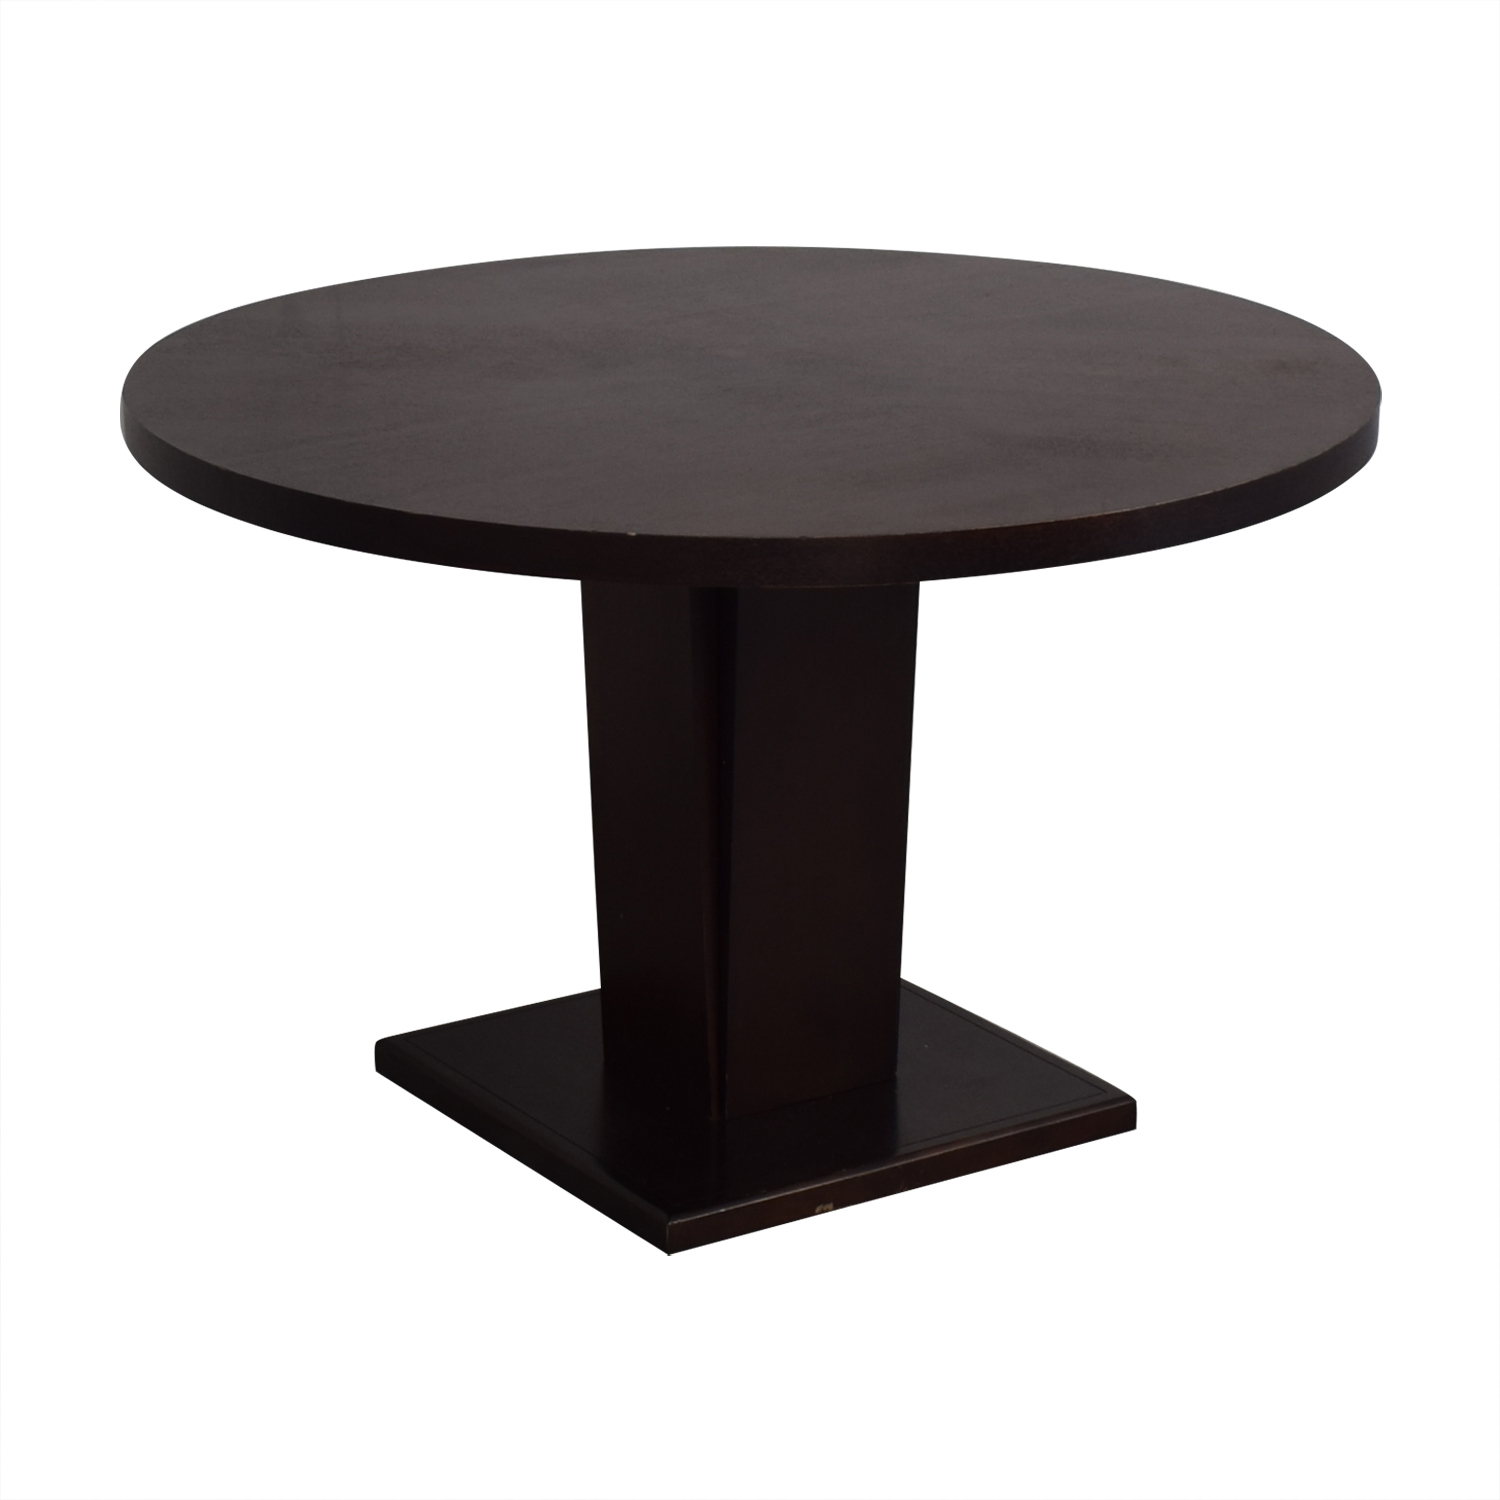 Crate & Barrel Crate & Barrel Espresso Round Dining Table for sale